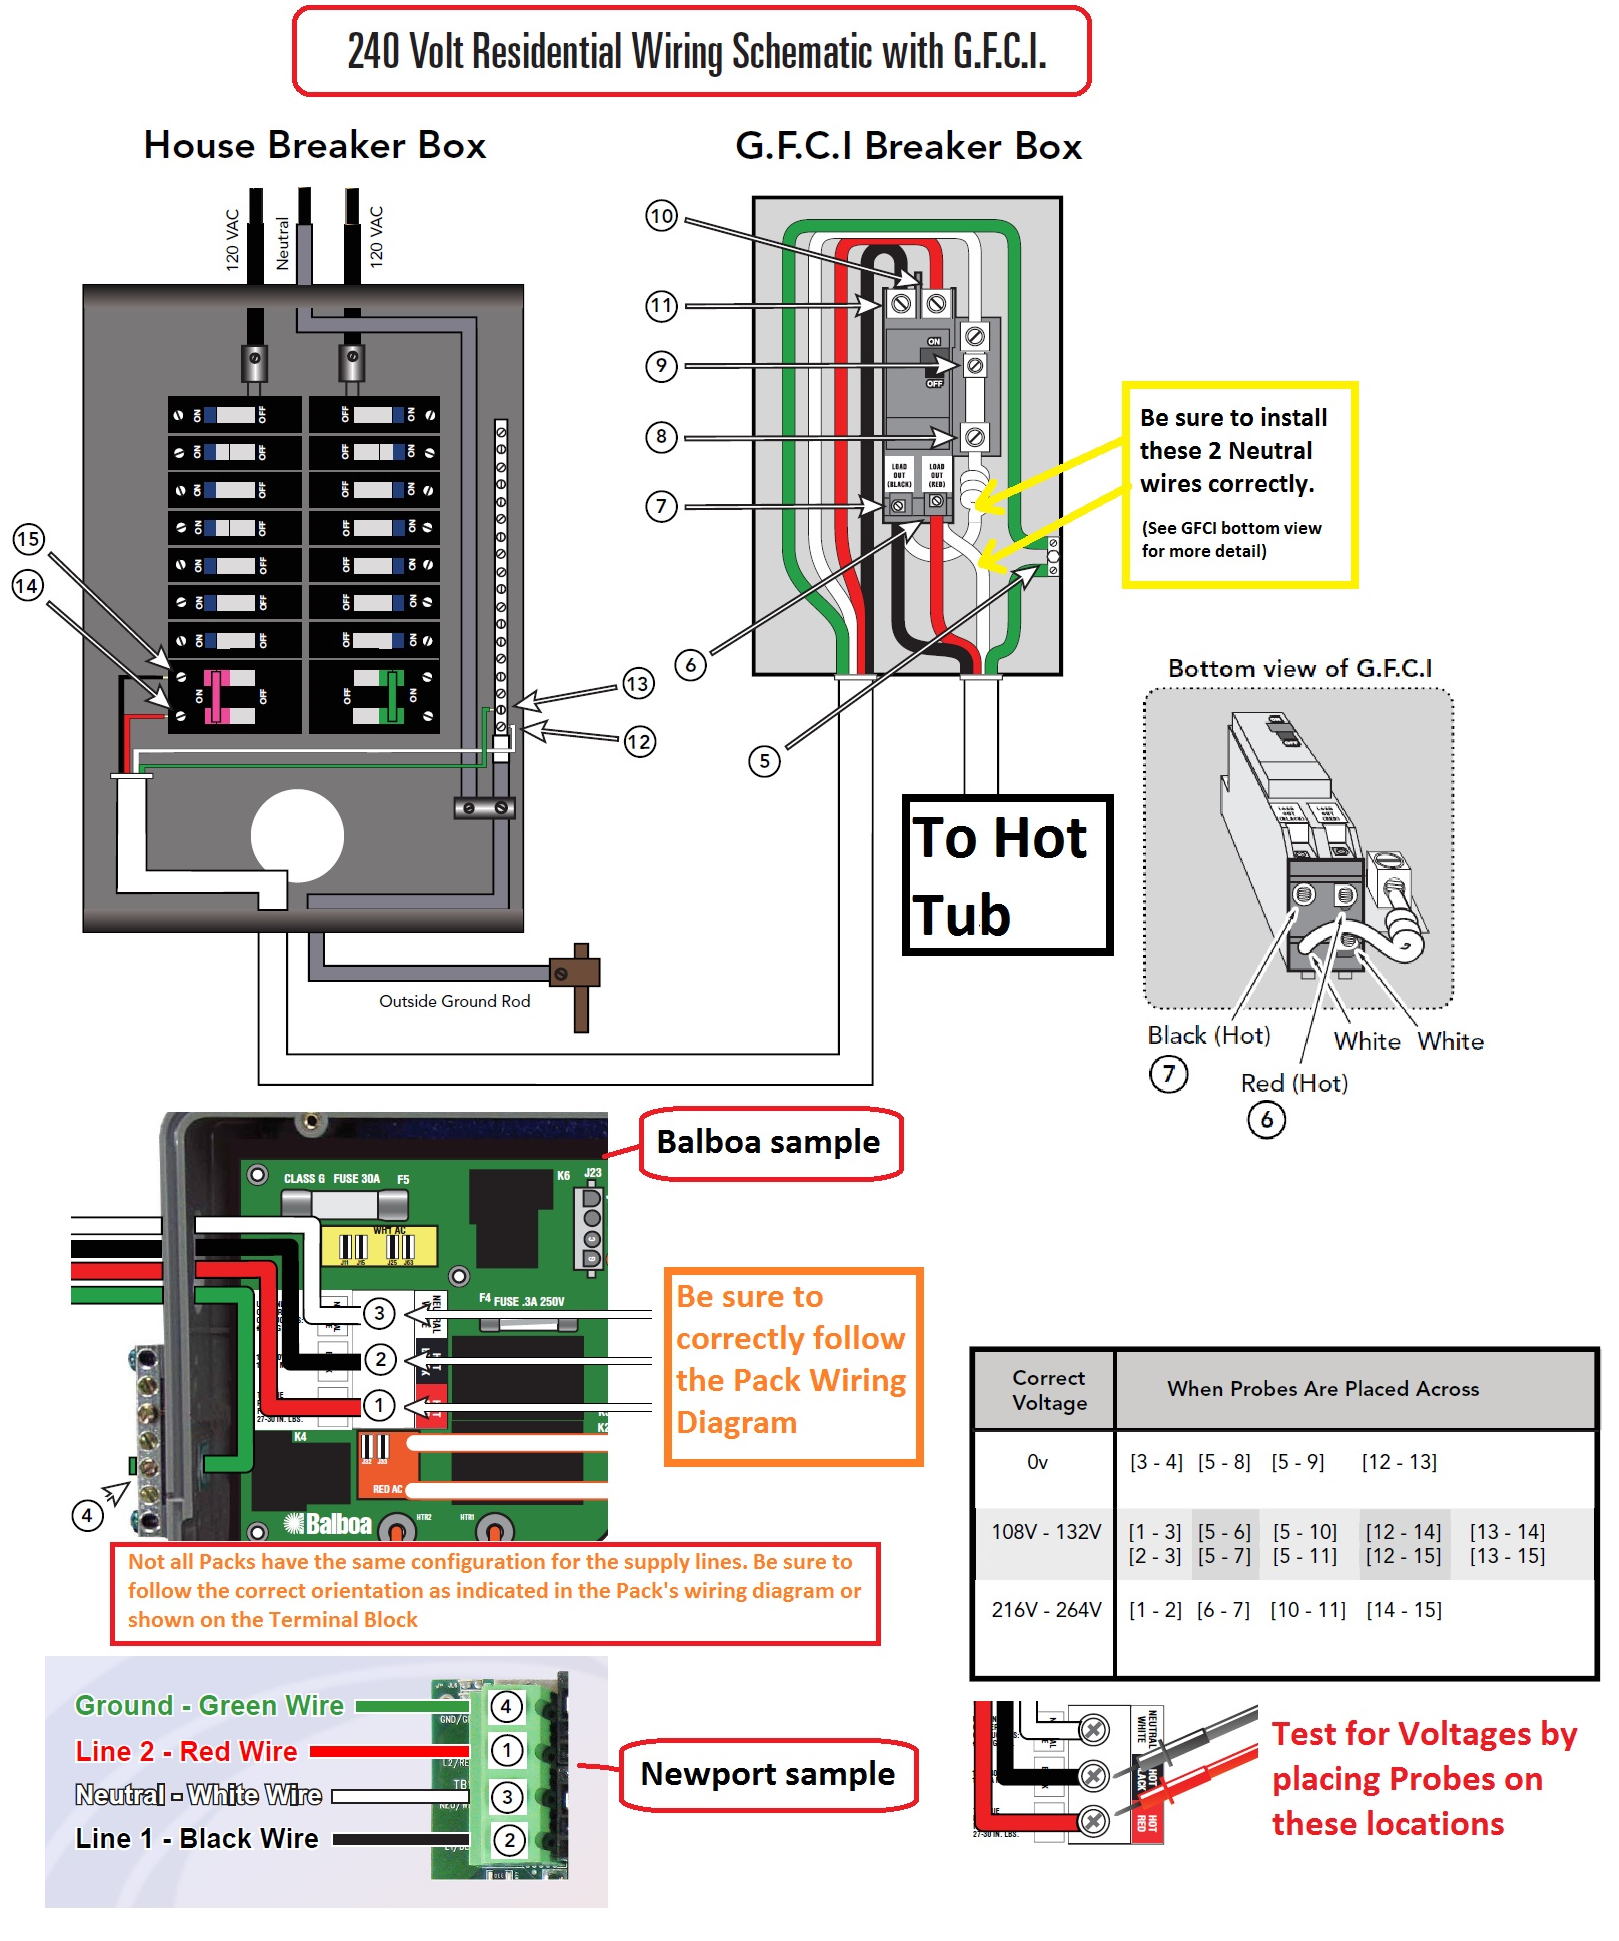 New Gfci Wiring Diagram For Hot Tub Diagram Diagramsample Diagramtemplate Wiringdiagram Diagramchart Worksheet Hot Tub Delivery Submersible Pump Diagram